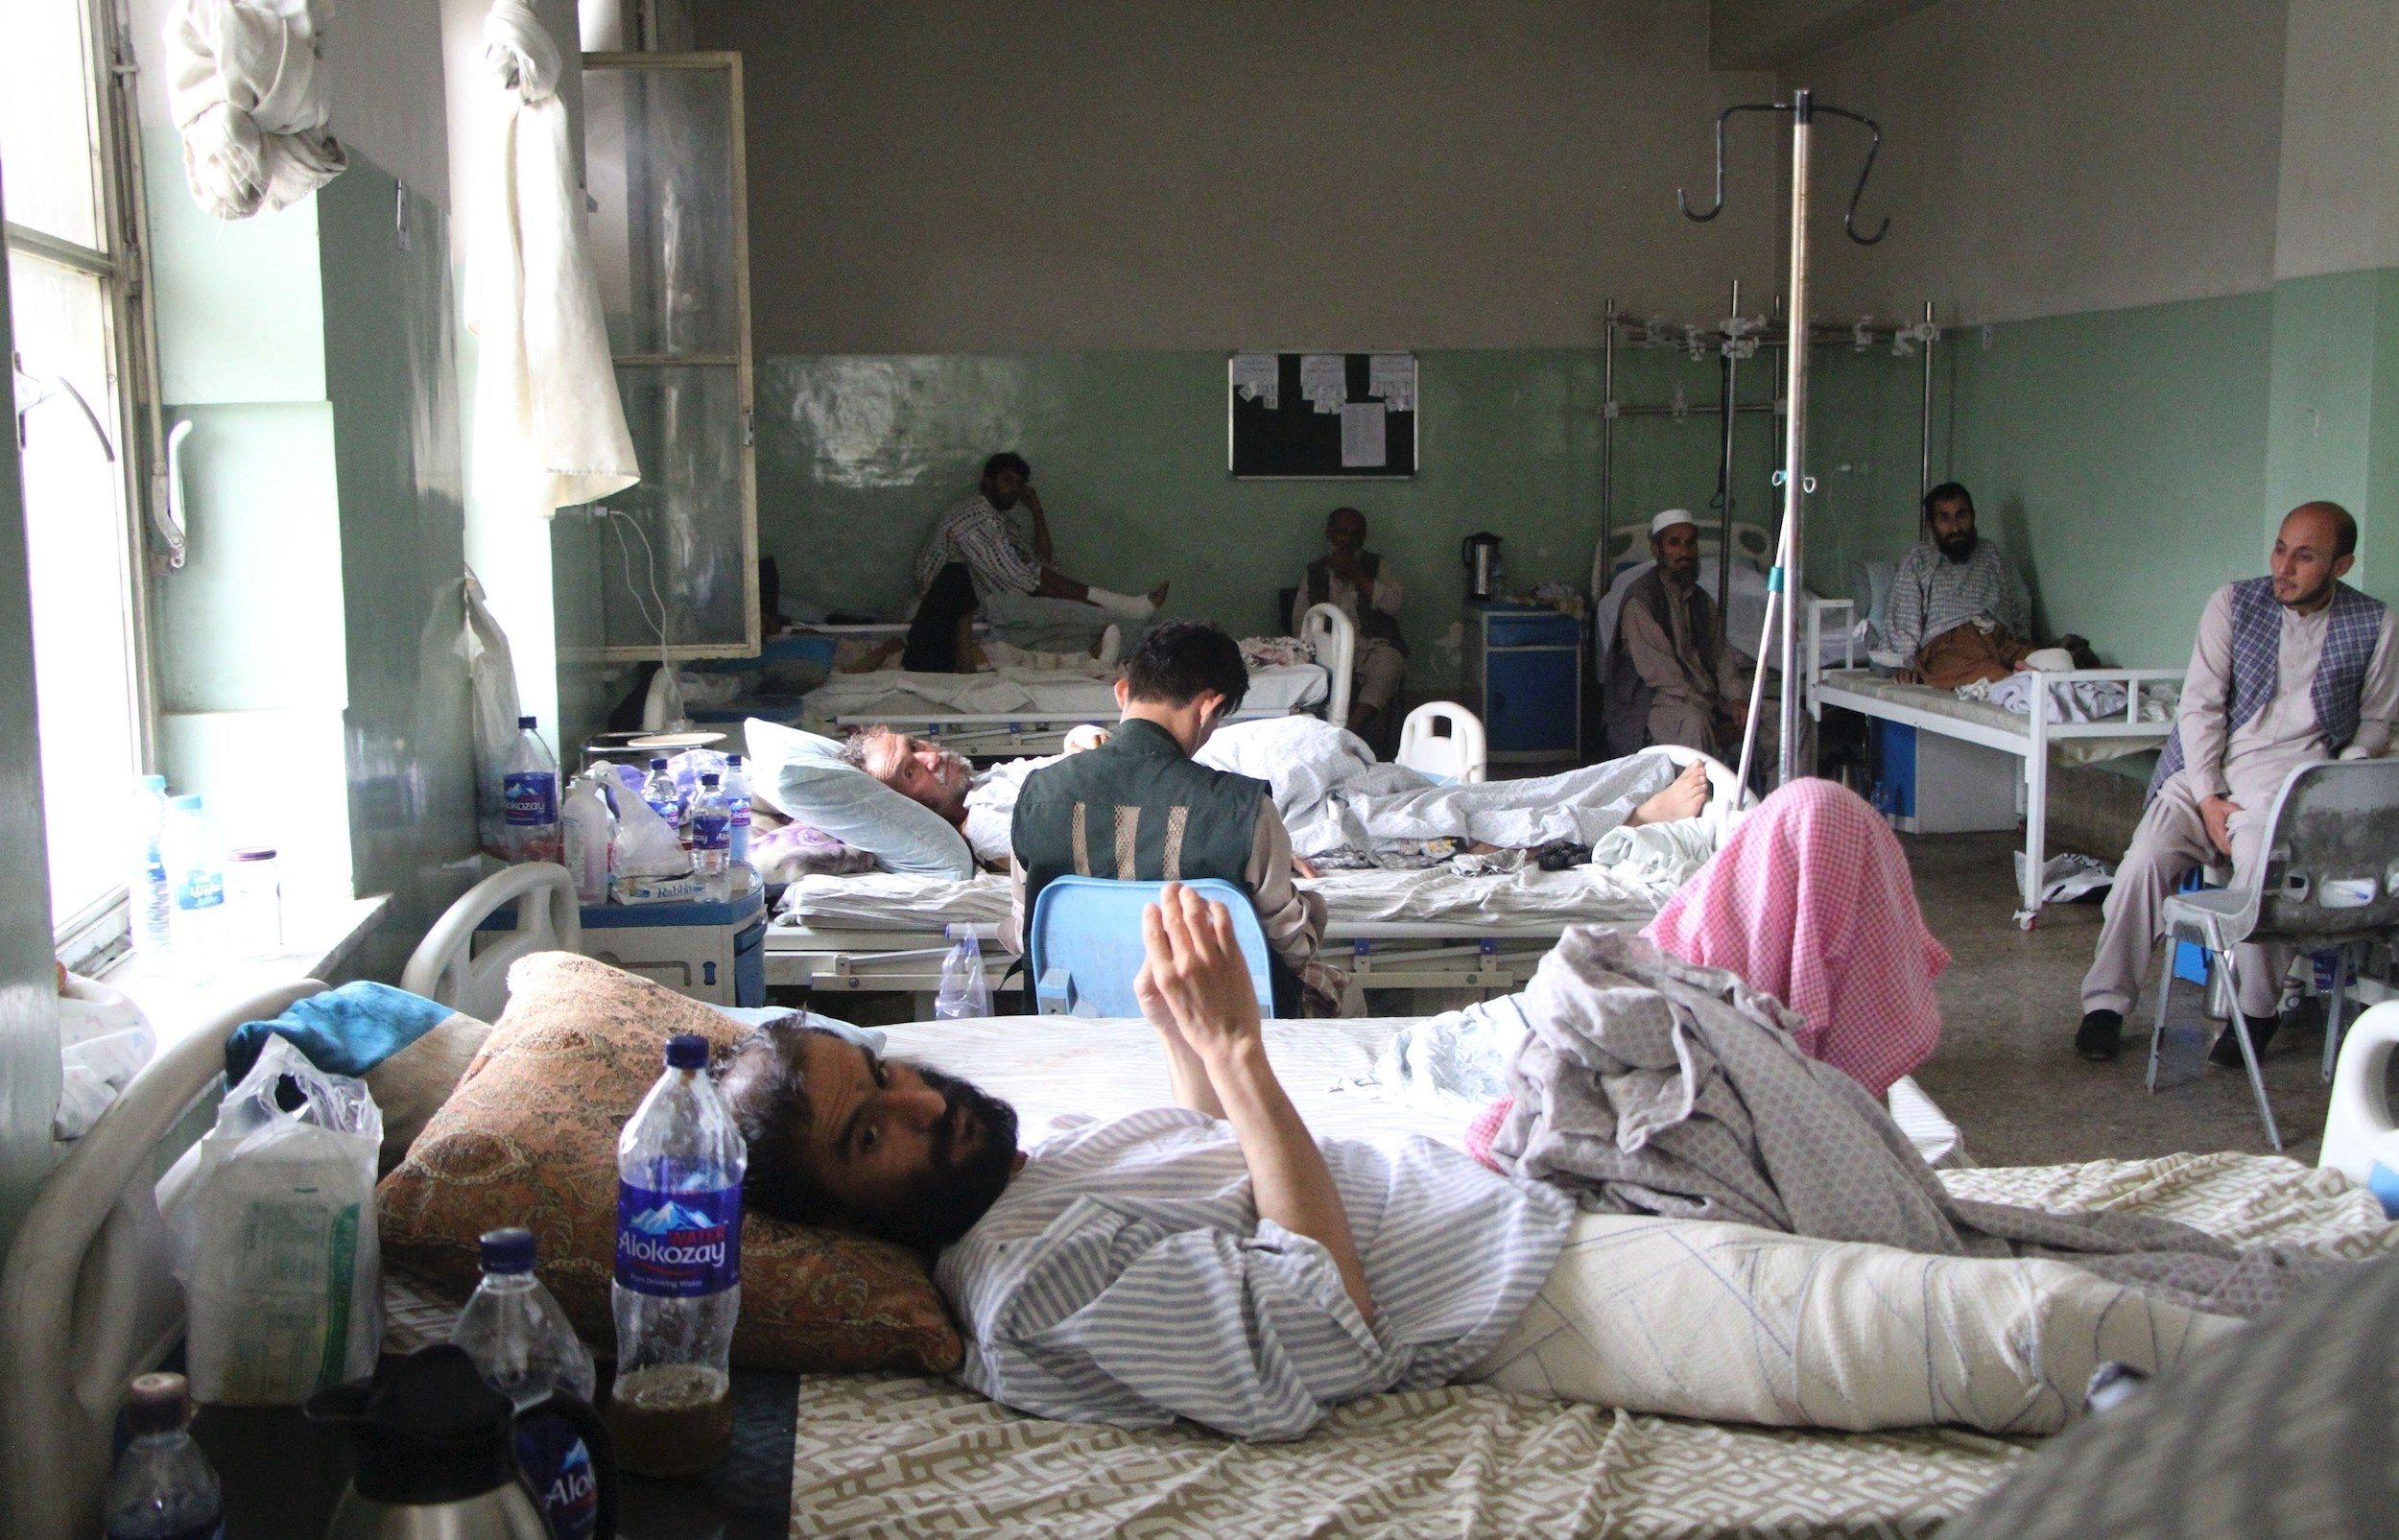 Patients at a hospital lie in bed as they heal from injuries